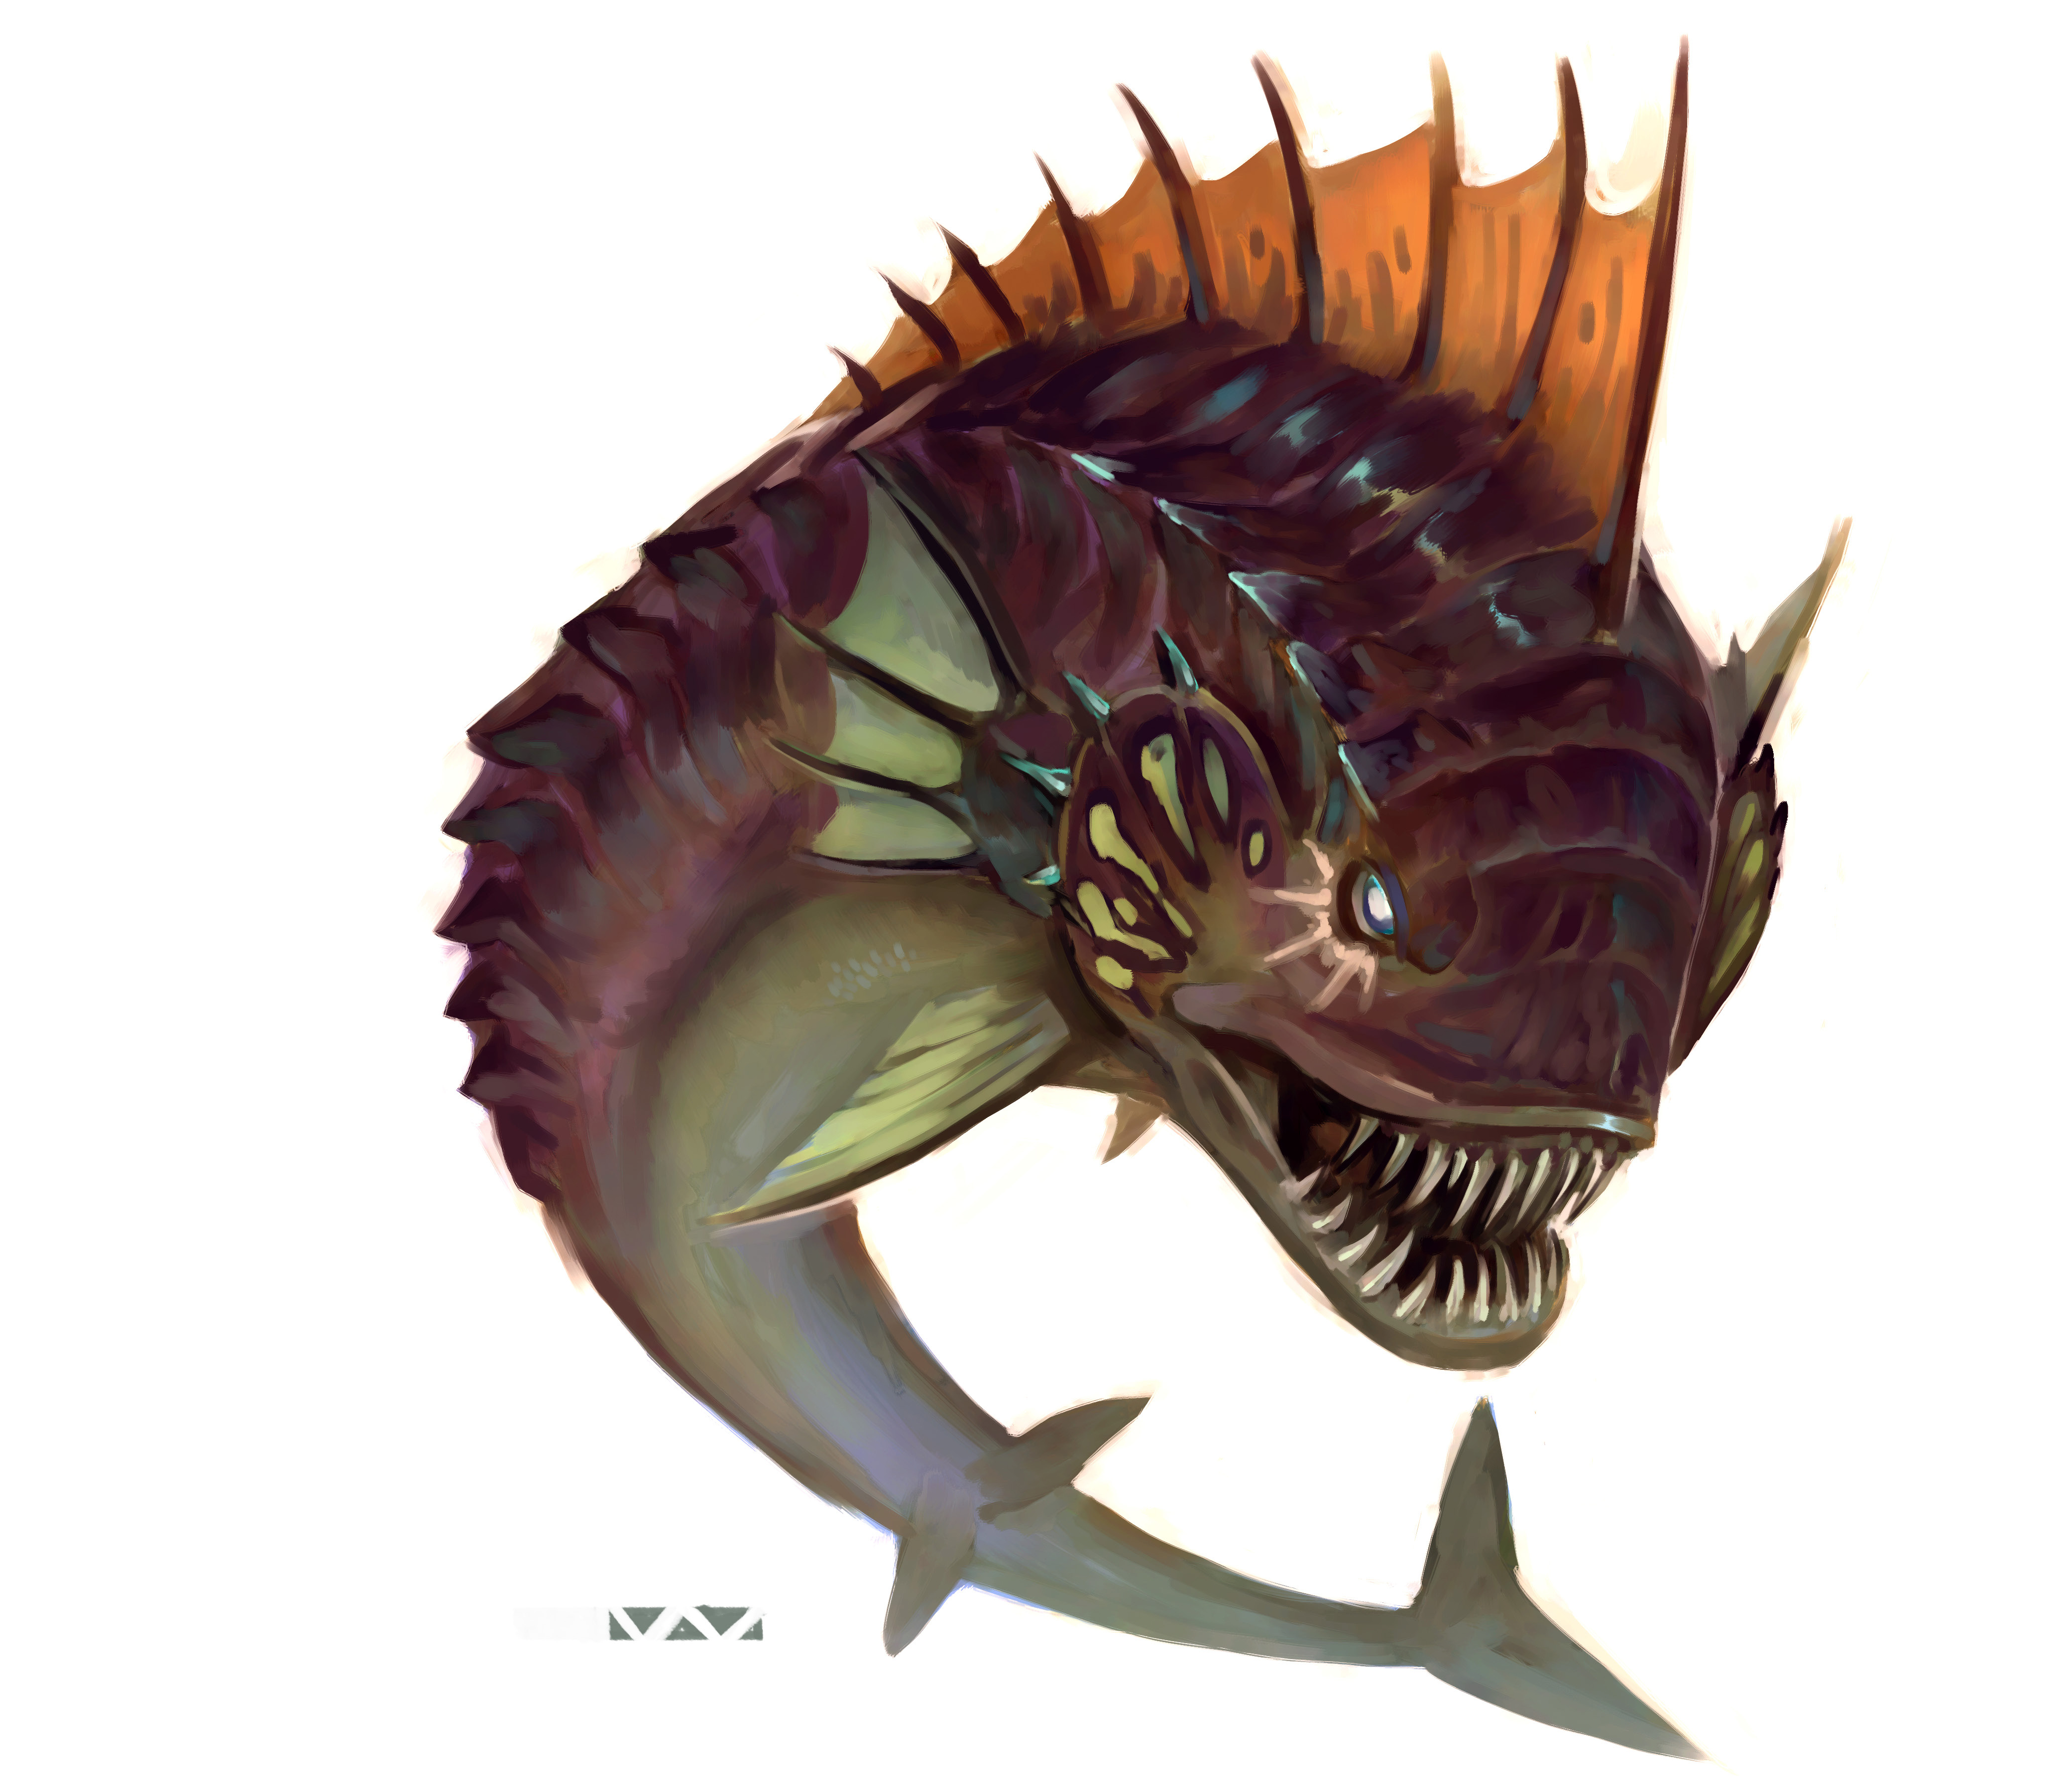 """stephen-wood """"Lune Eater"""" - by Stephen Wood Dungeon Master's Guild """"Angler: a Ranger's Path"""" (2018-02) © Wizards of the Coast e dell'autore, tutti i diritti riservati"""